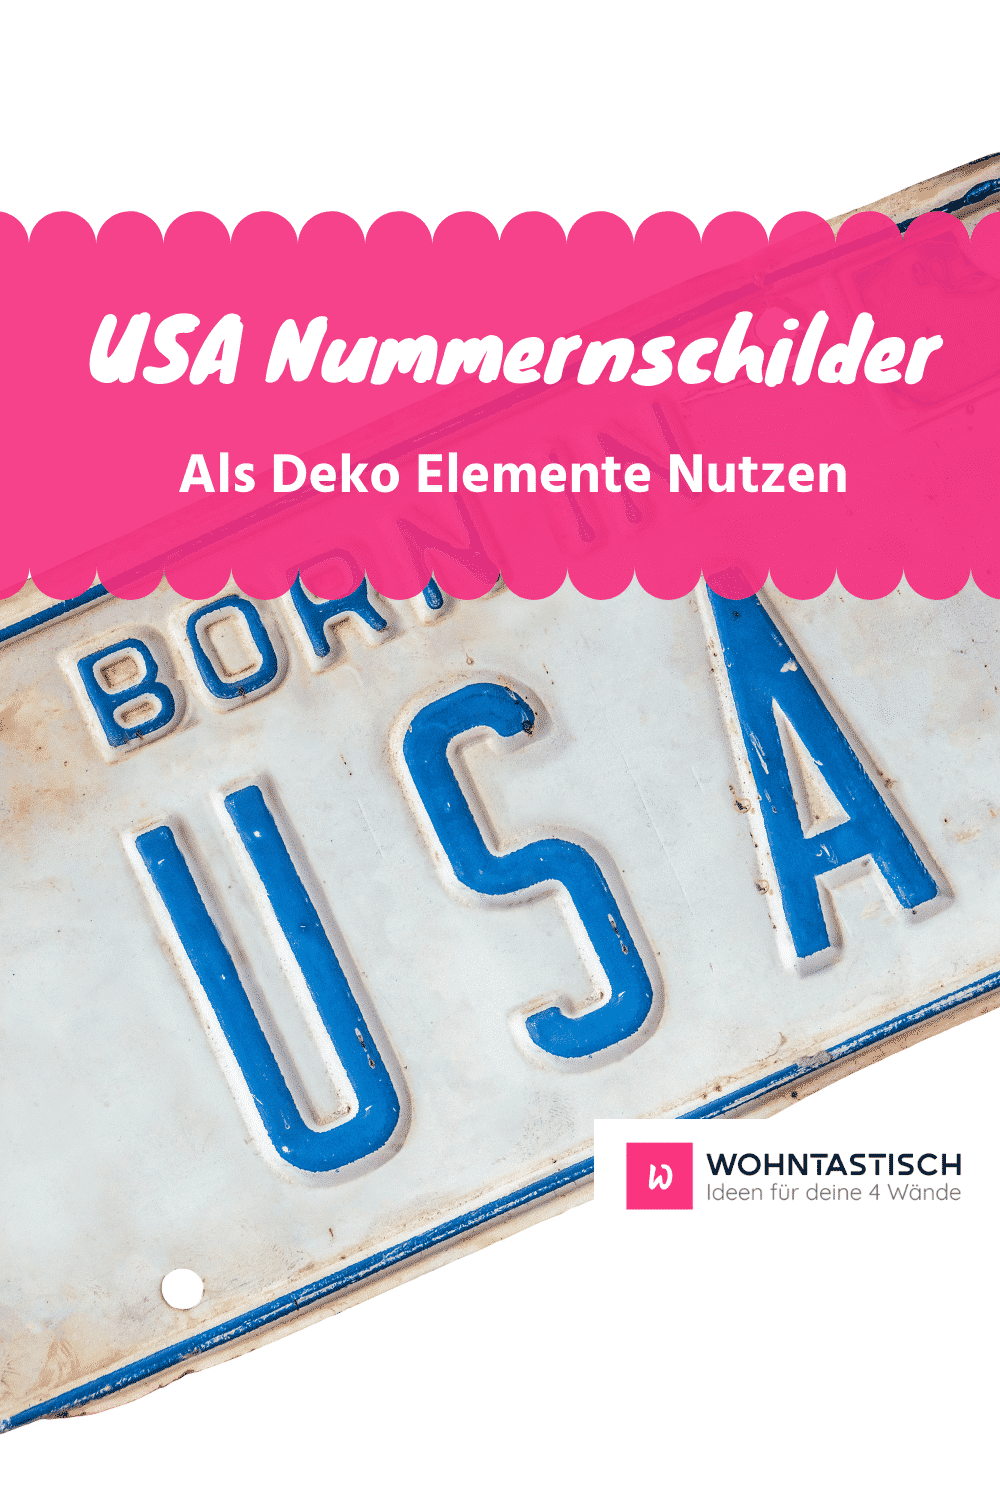 USA Nummernschild